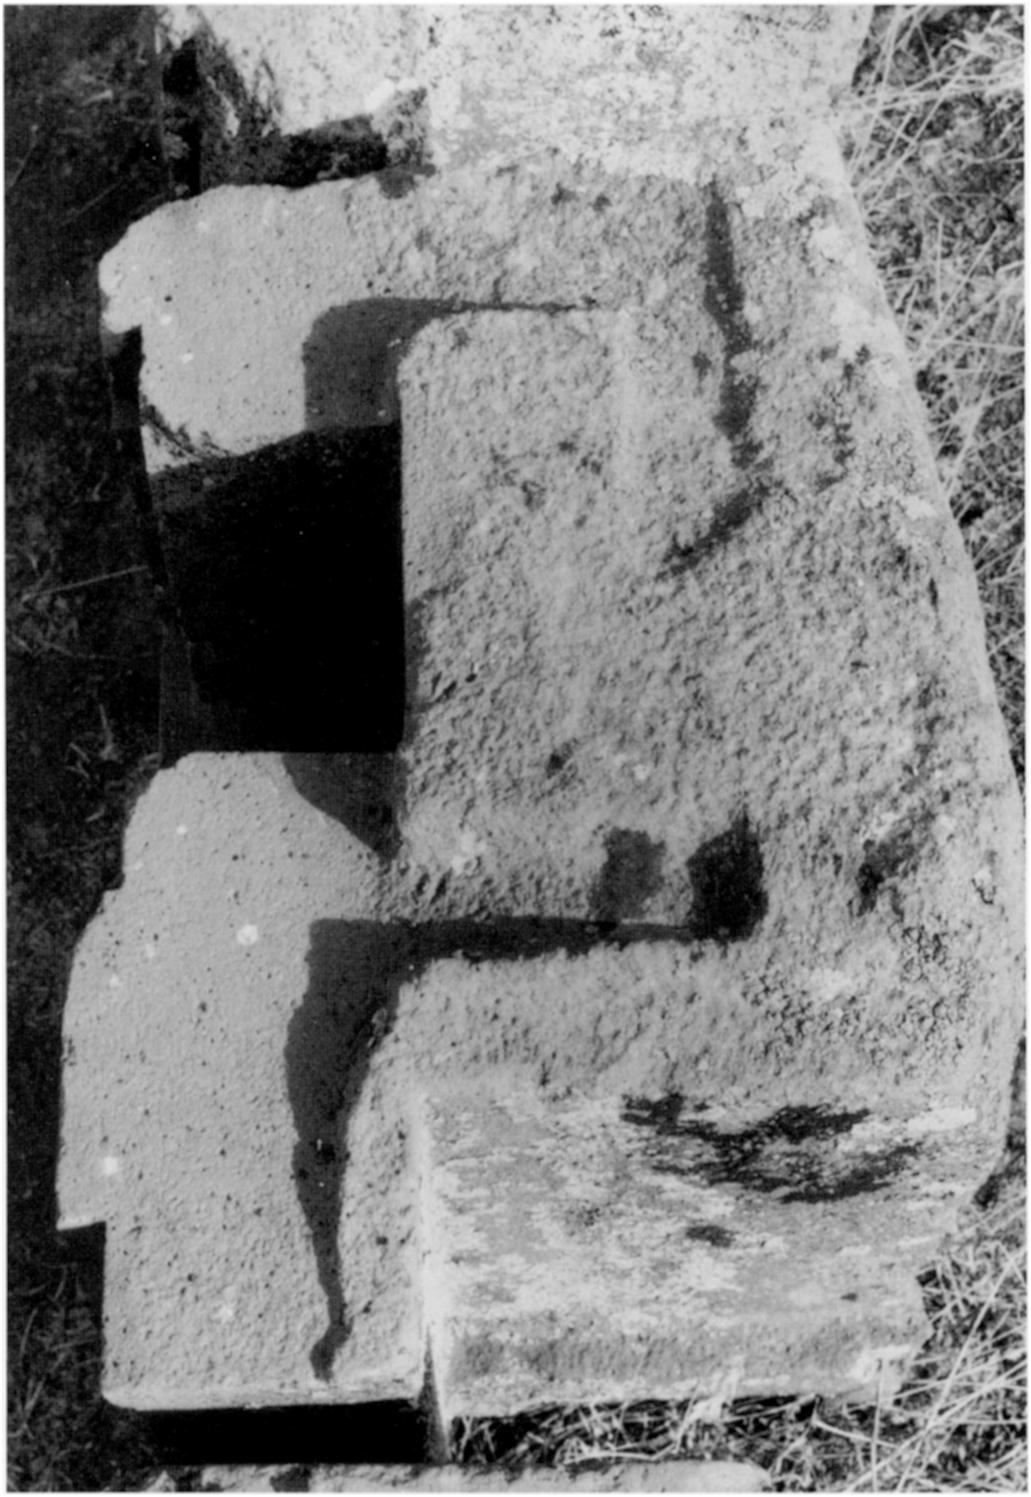 to be carved into a stone, the outer surface was finished before the recess was attacked. Evidence of this is provided by the stepped cross stones at the Kantatayita.